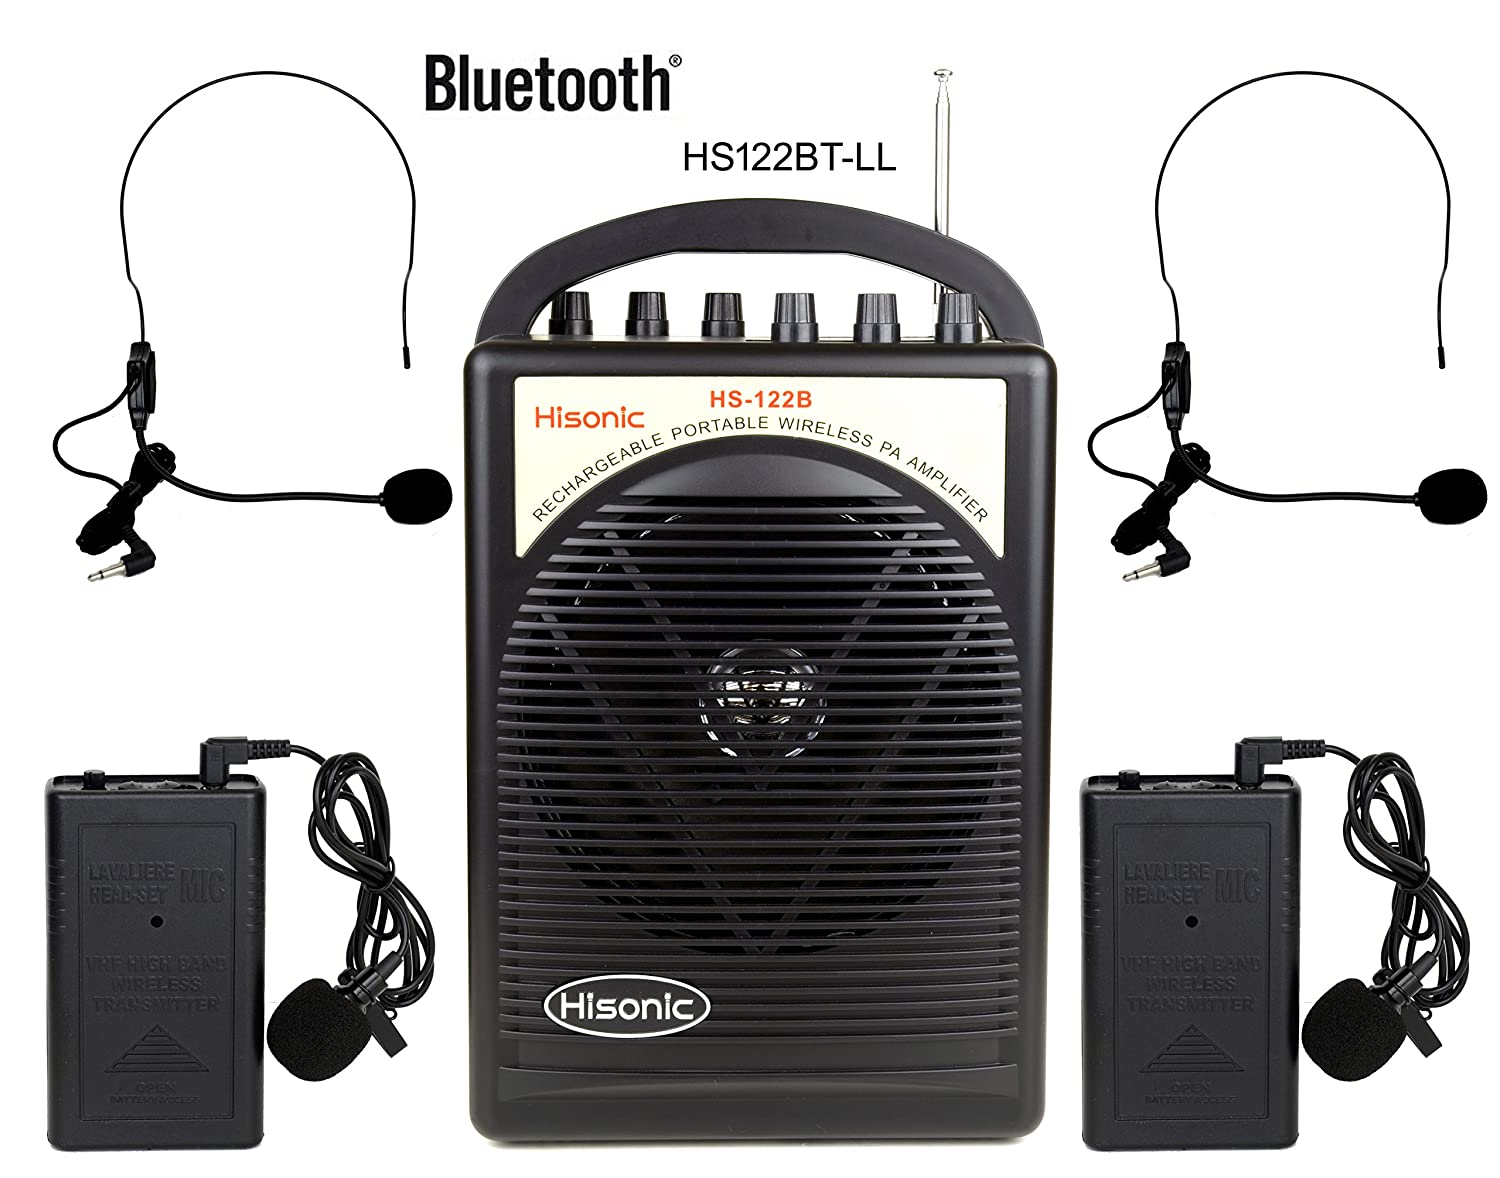 HISONIC HS122BT-LL Portable PA System with Dual Channel Wireless Microphones (Two handheland), Lithium Rechargeable Battery, Bluetooth Streaming Music From your Cell Phones,iPads, Android Pads and Computer, with Car Cable and Carry Bag, PA system, Black HS